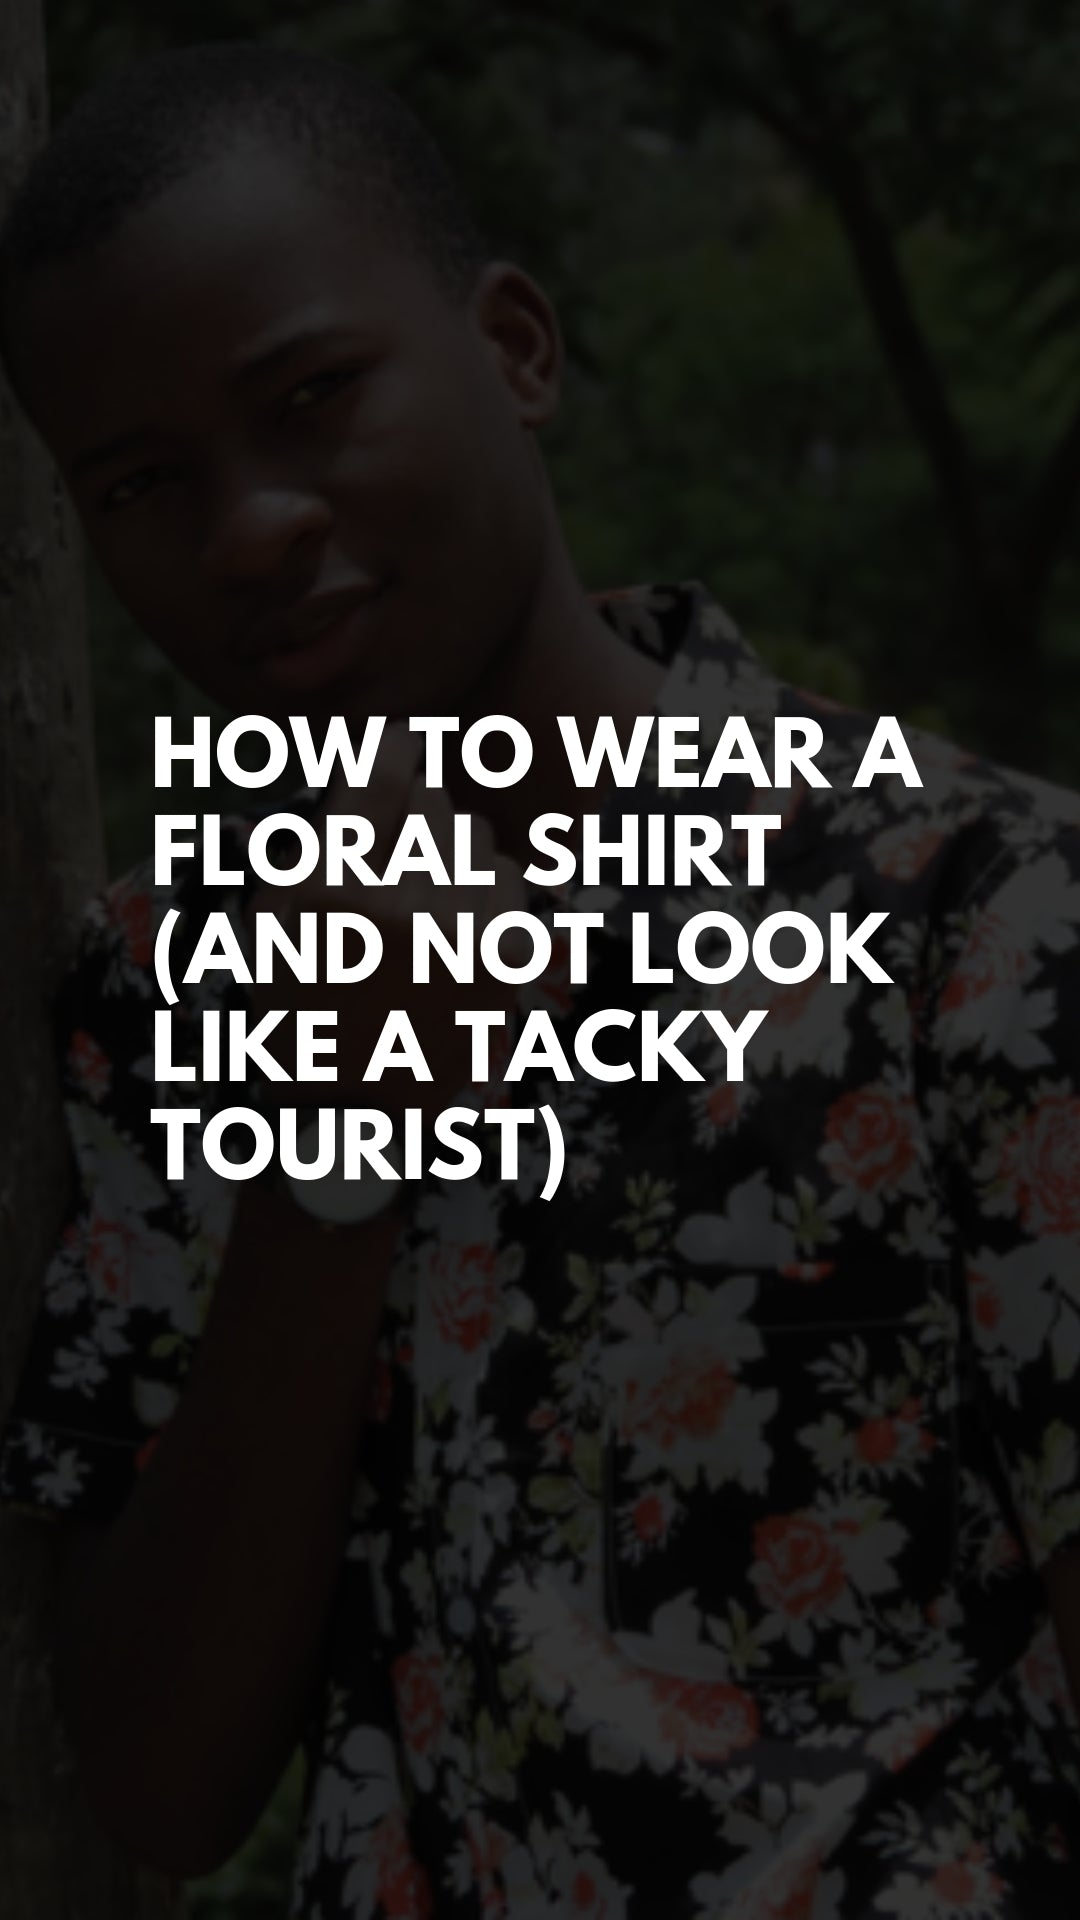 How to Wear a Floral Shirt (And Not Look Like a Tacky Tourist)